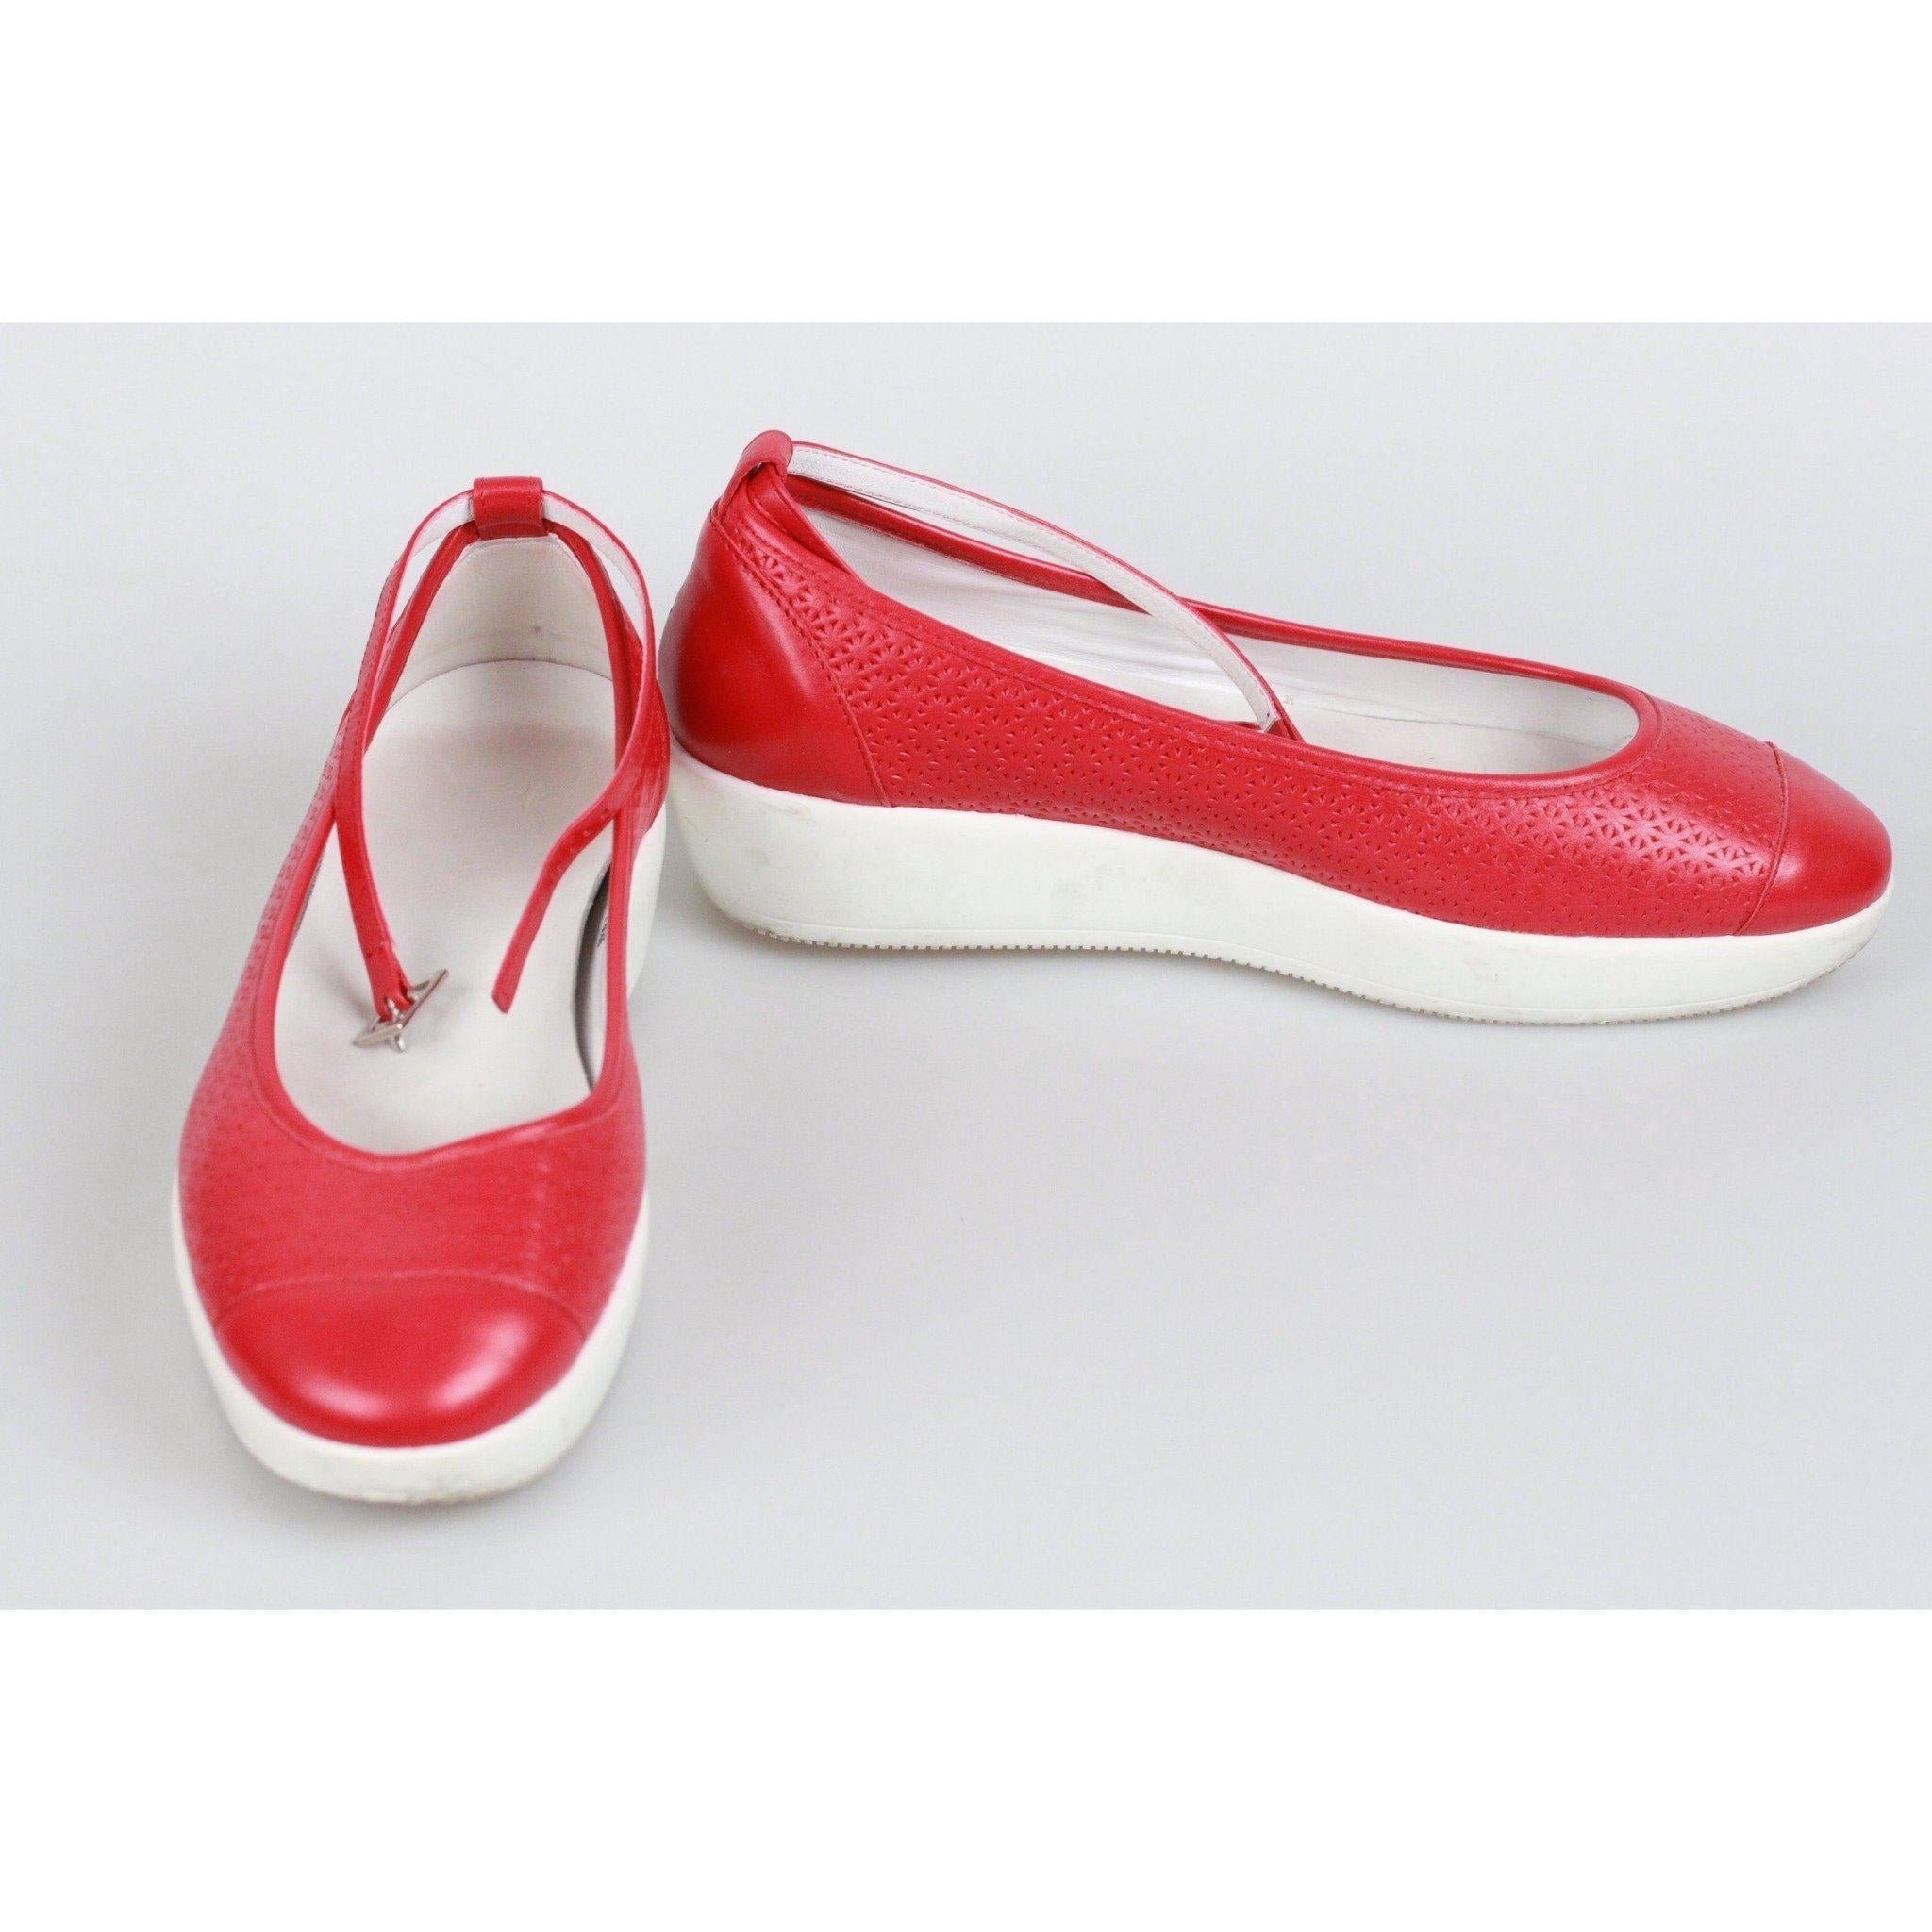 HOGAN Red Leather ZEPPA FASHION Ballerina Shoes SIZE 37 For Sale ...